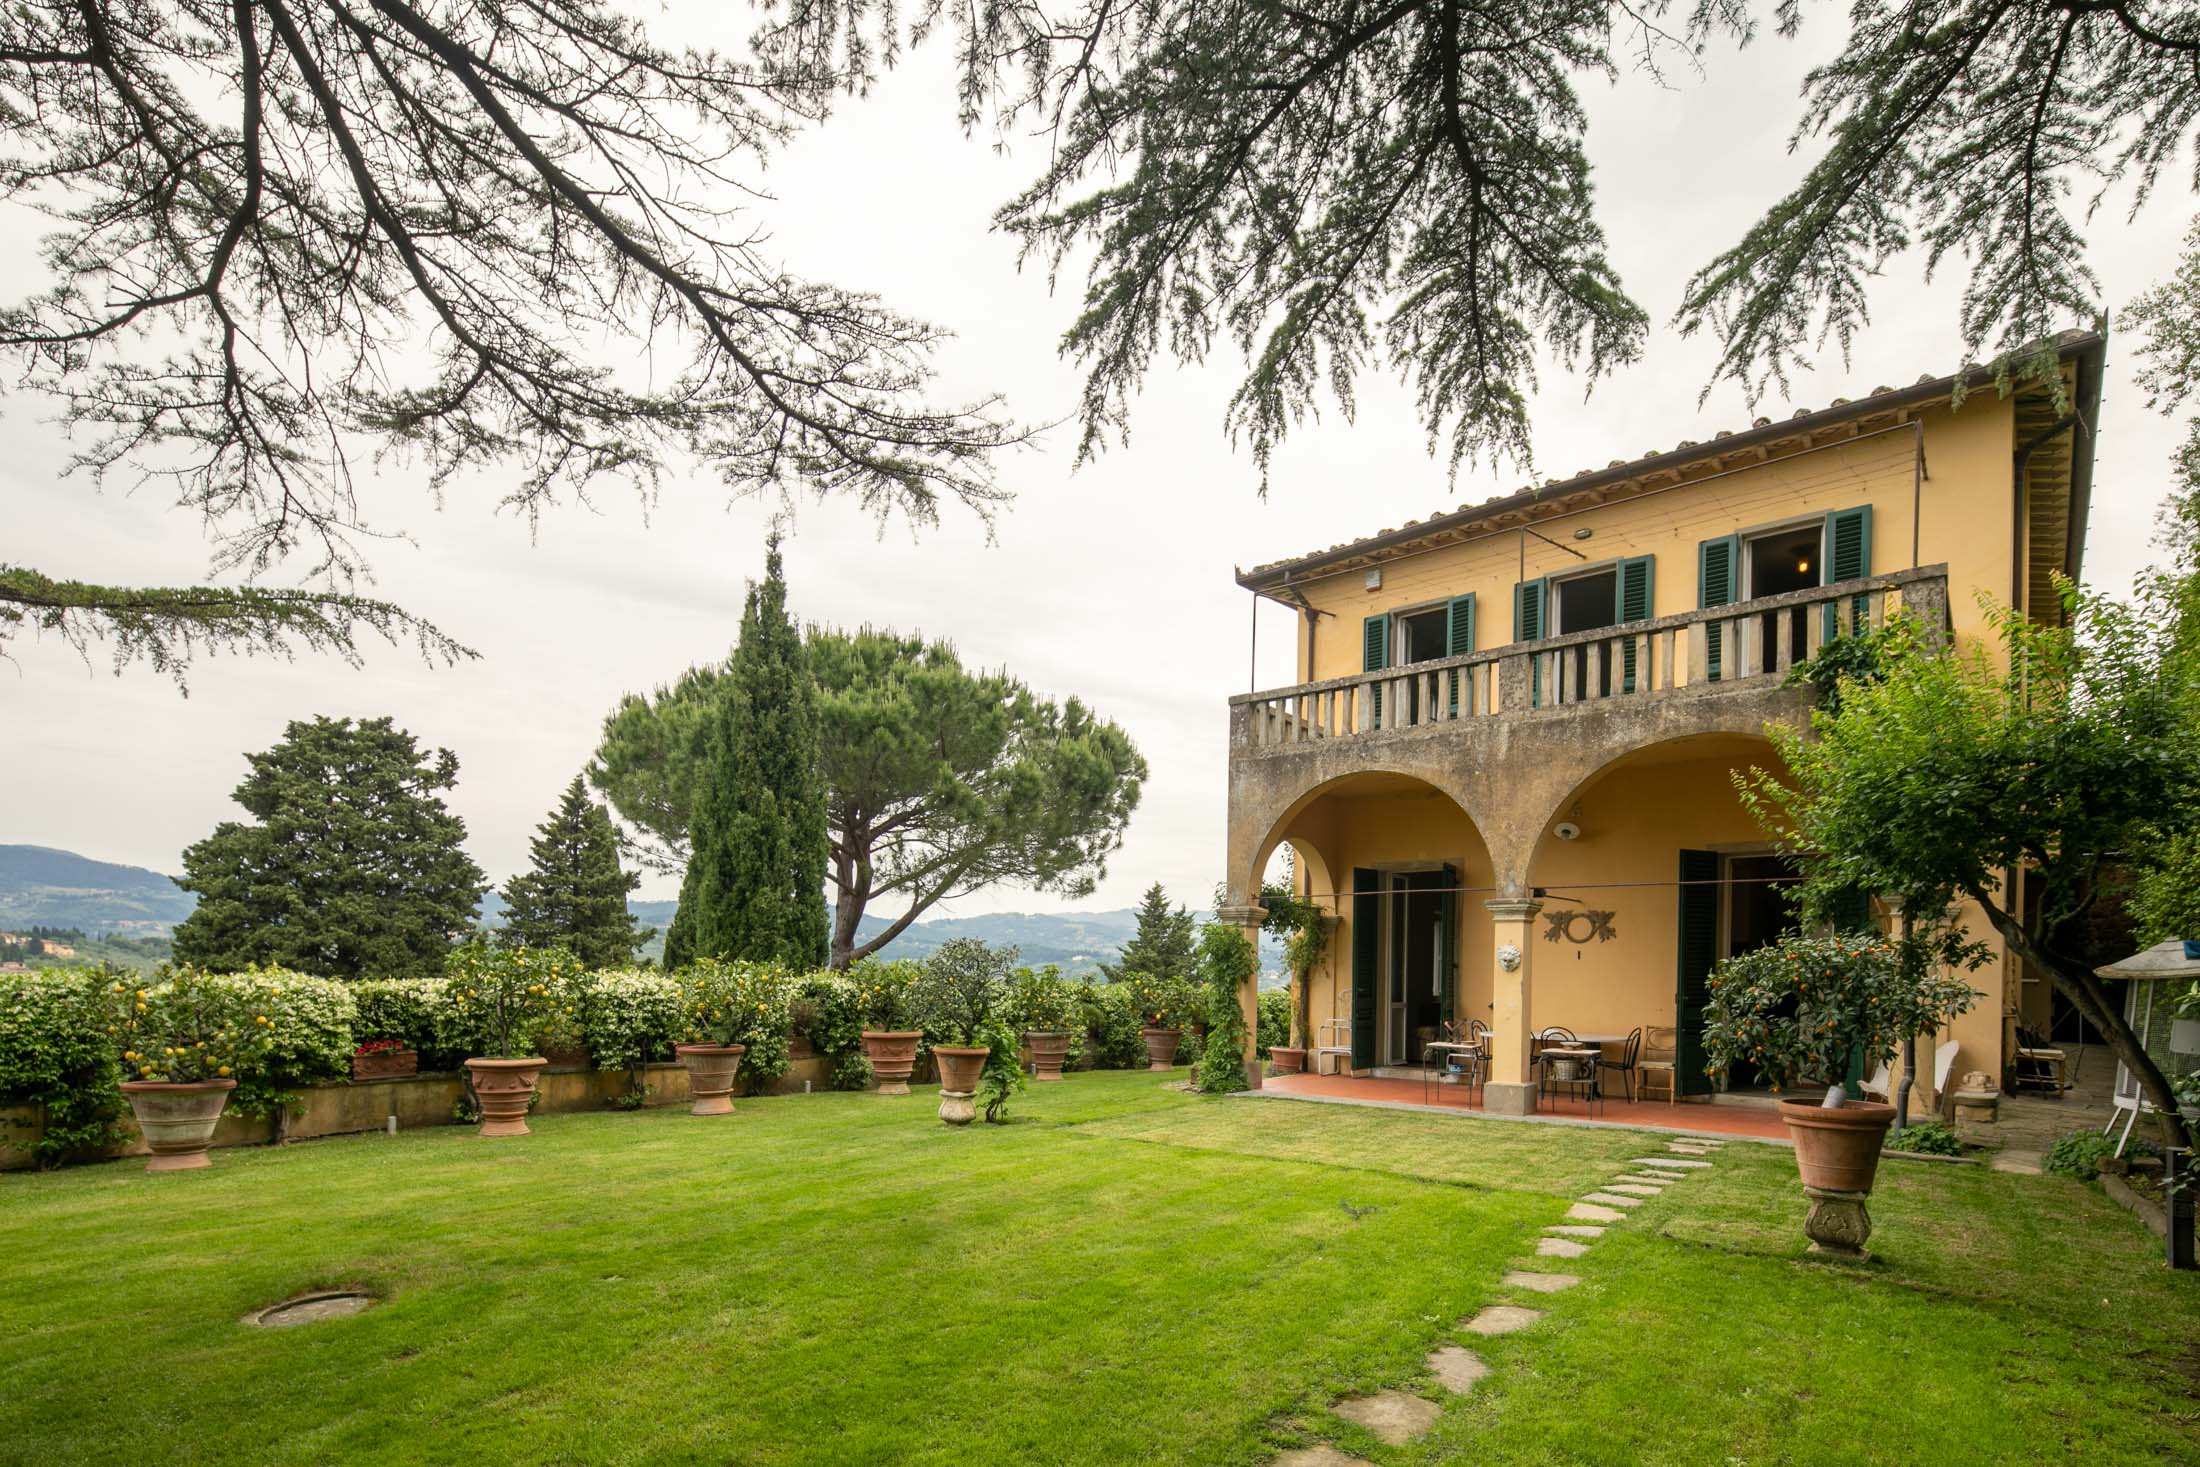 Property with Villa and annex<br> in Fiesole